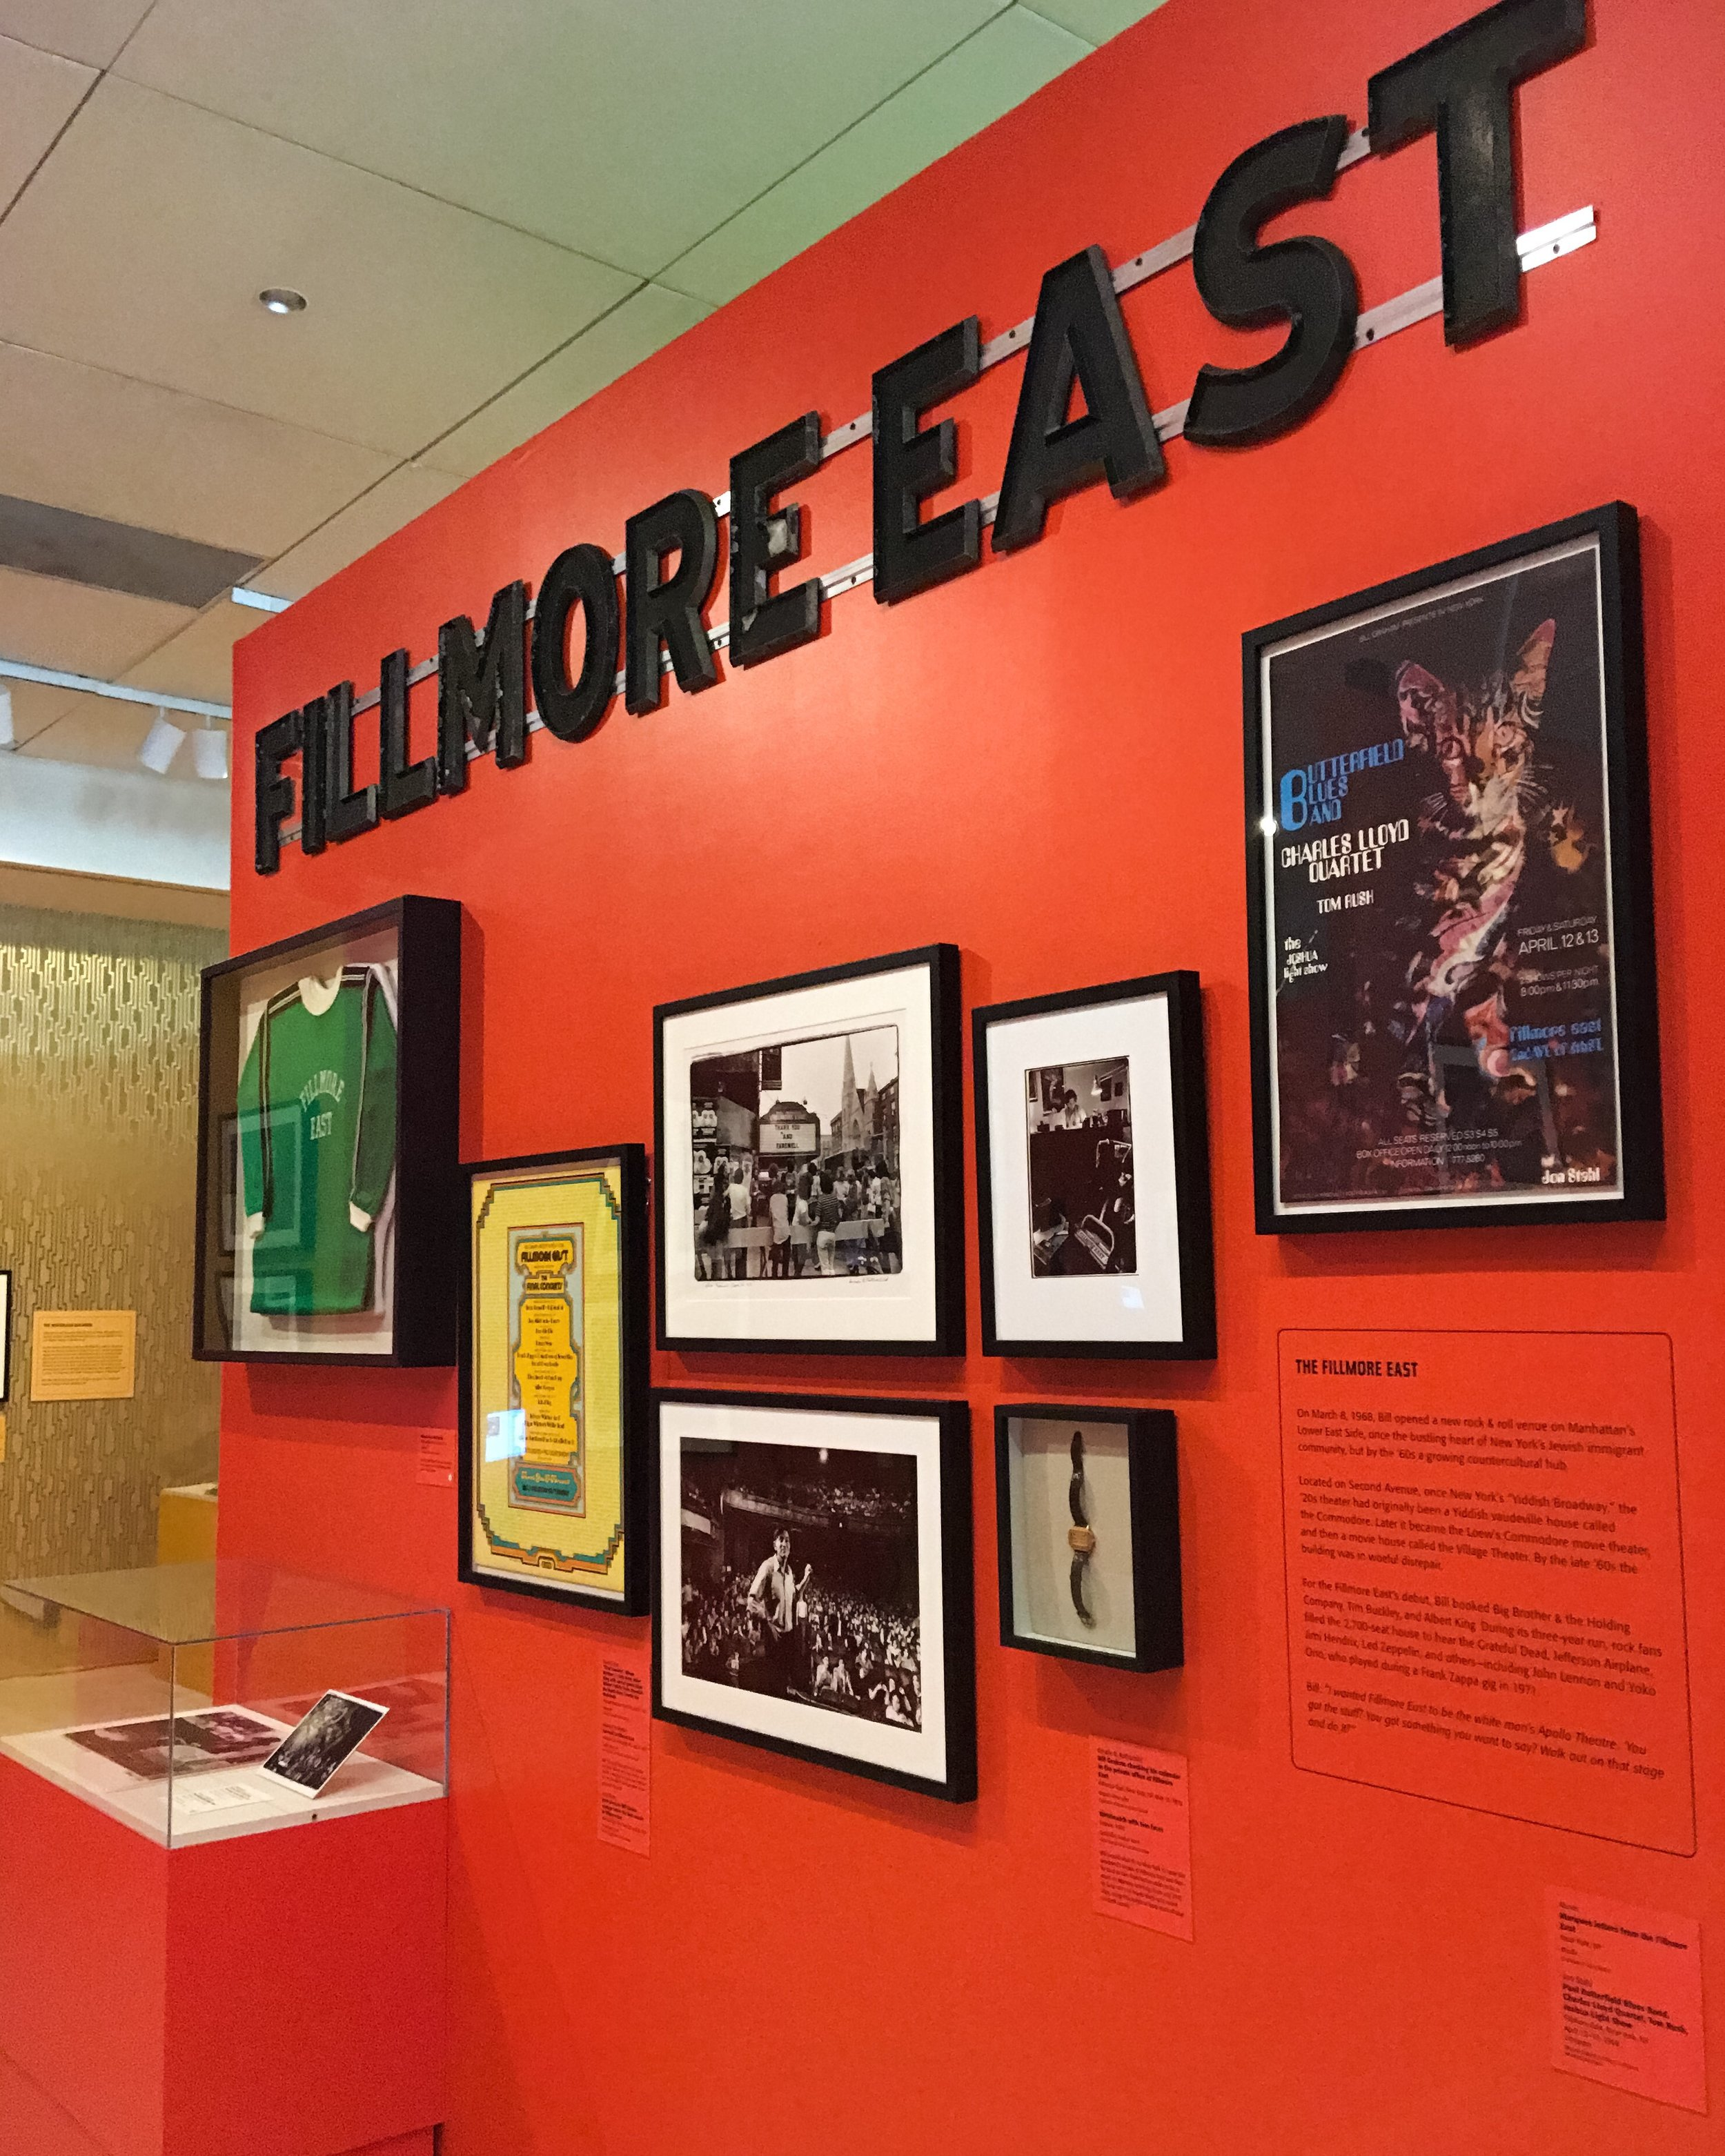 The actual letters which made up the sign outside the Fillmore East in New York until its closing in 1971.